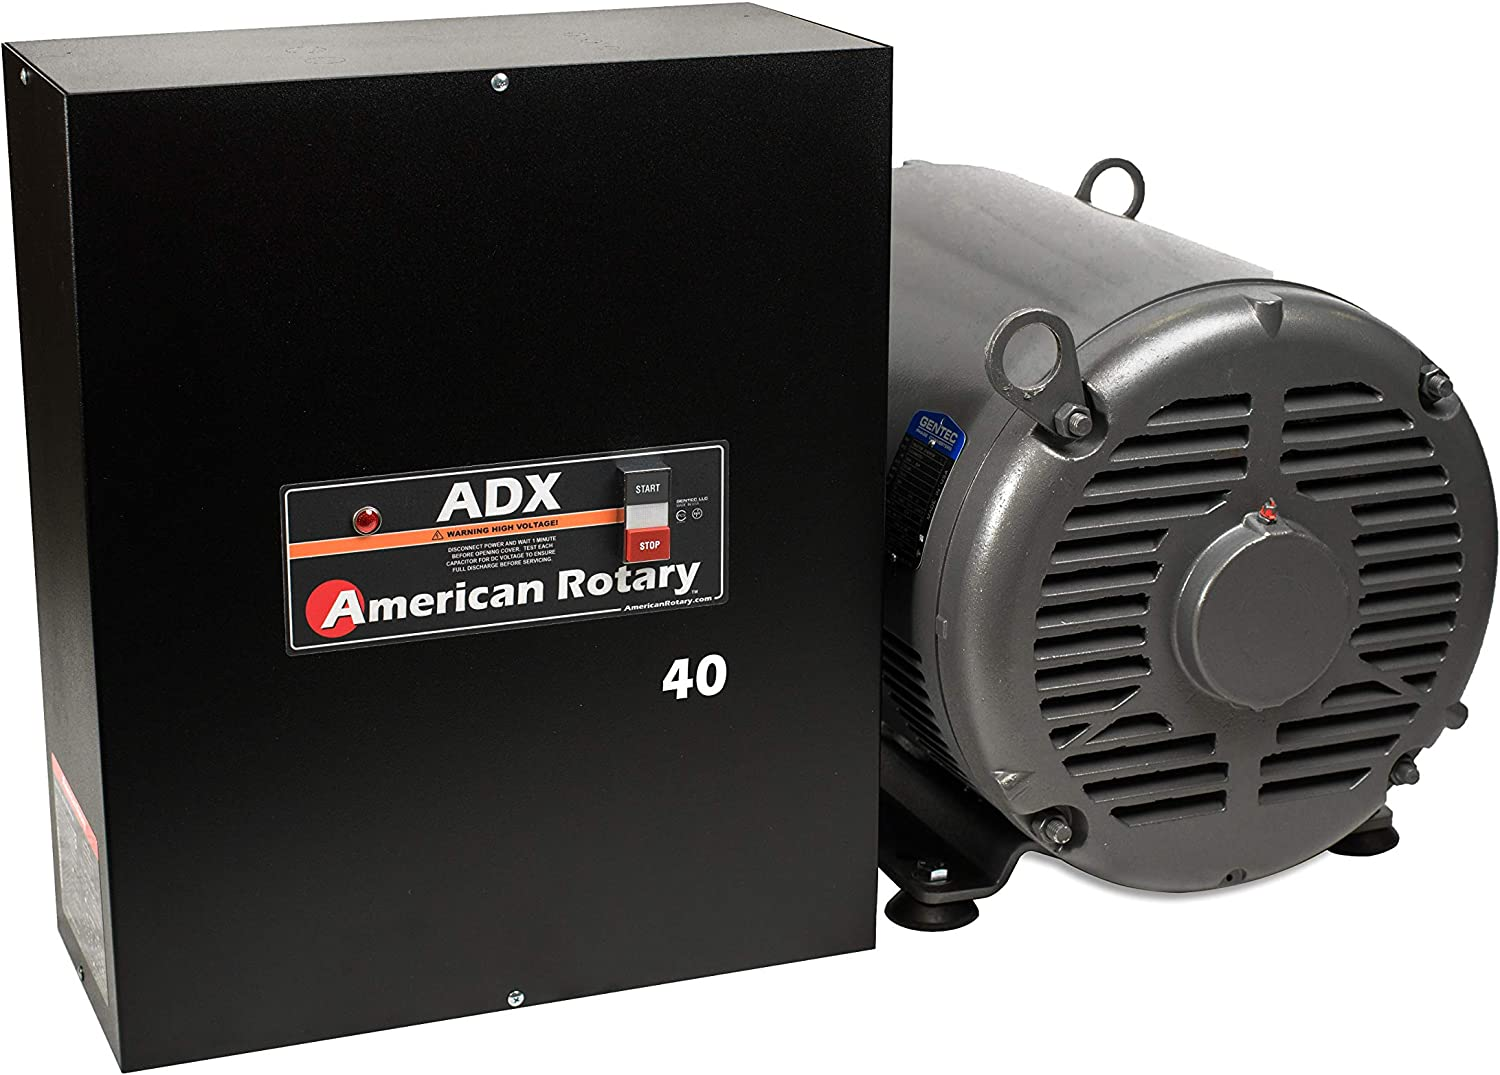 Phase Converter ADX40-40 HP Digital Smart Series Extreme Duty - American Made